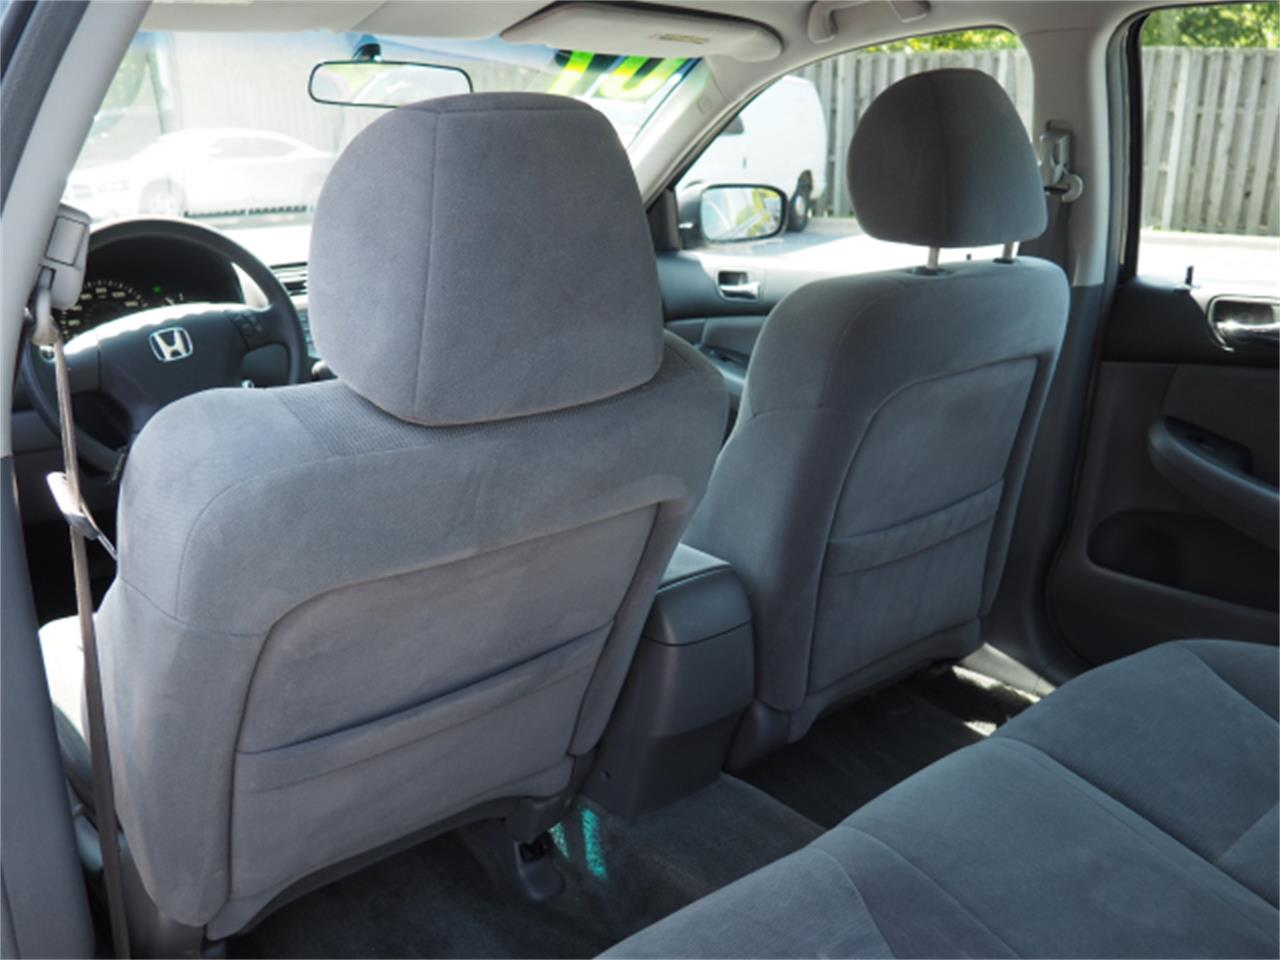 2007 Honda Accord (CC-1234474) for sale in Downers Grove, Illinois